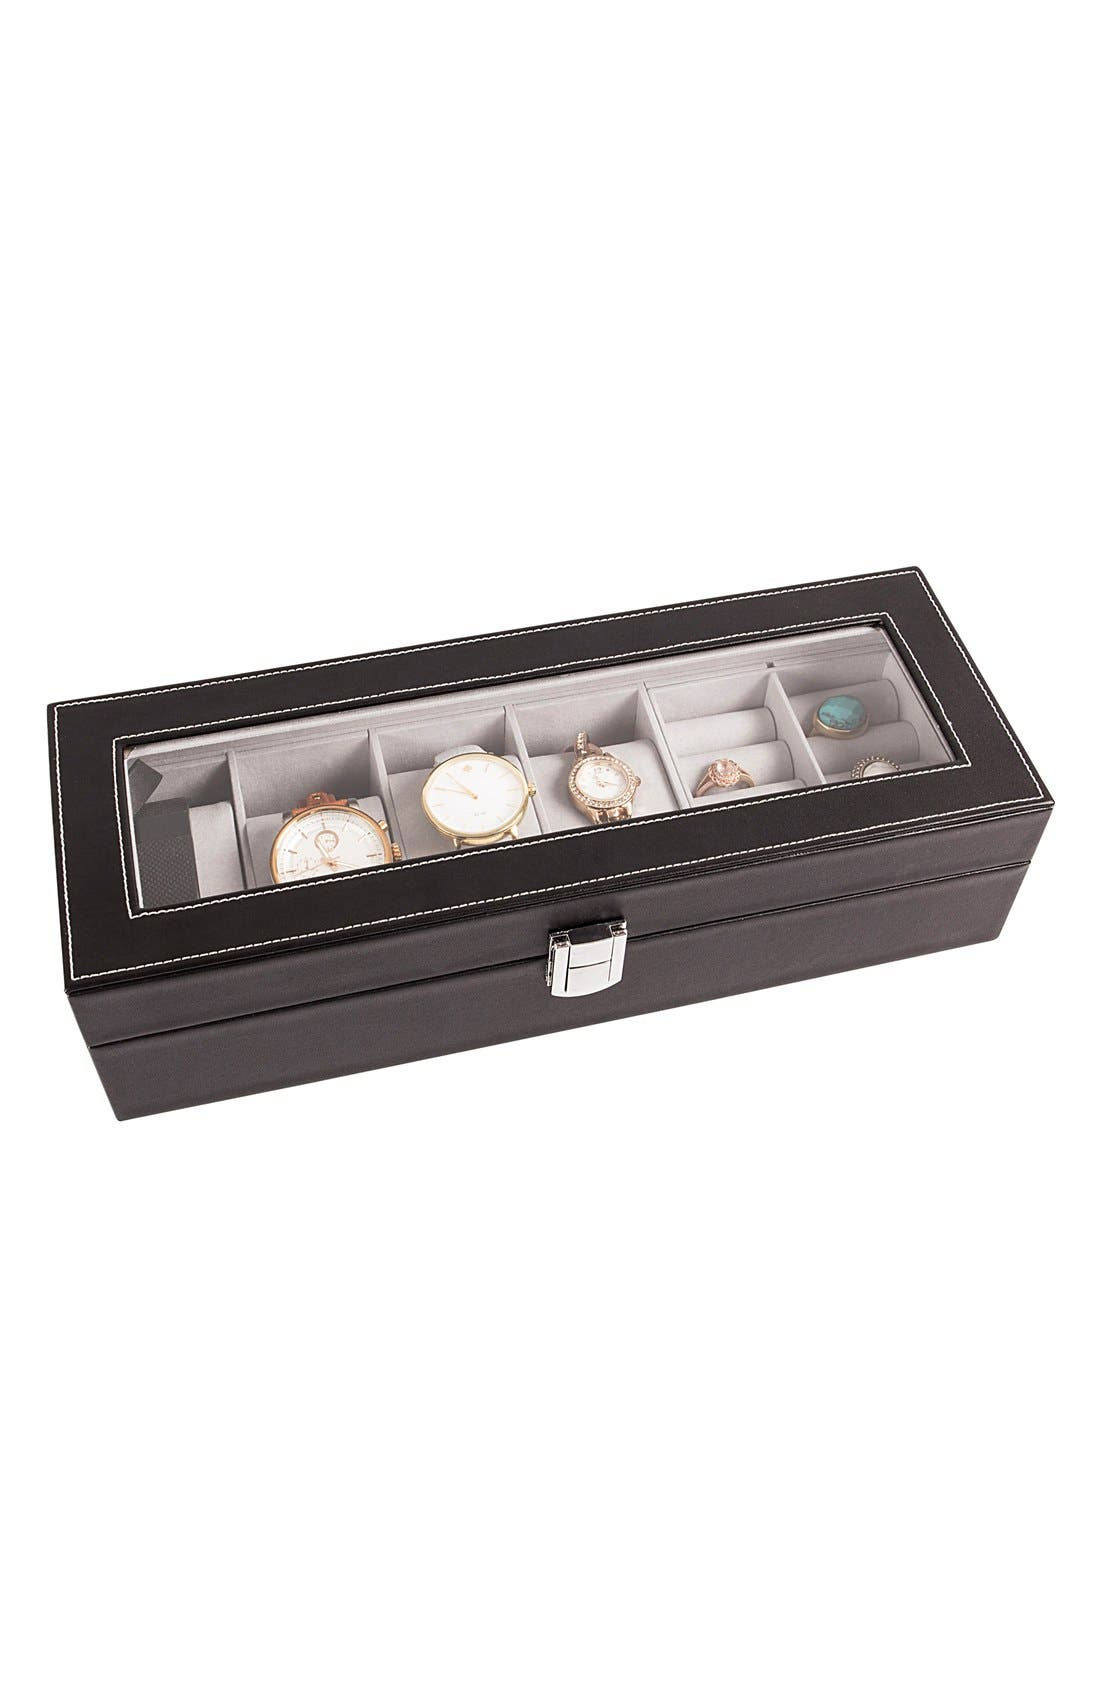 Monogram Watch & Jewelry Case,                             Main thumbnail 1, color,                             001